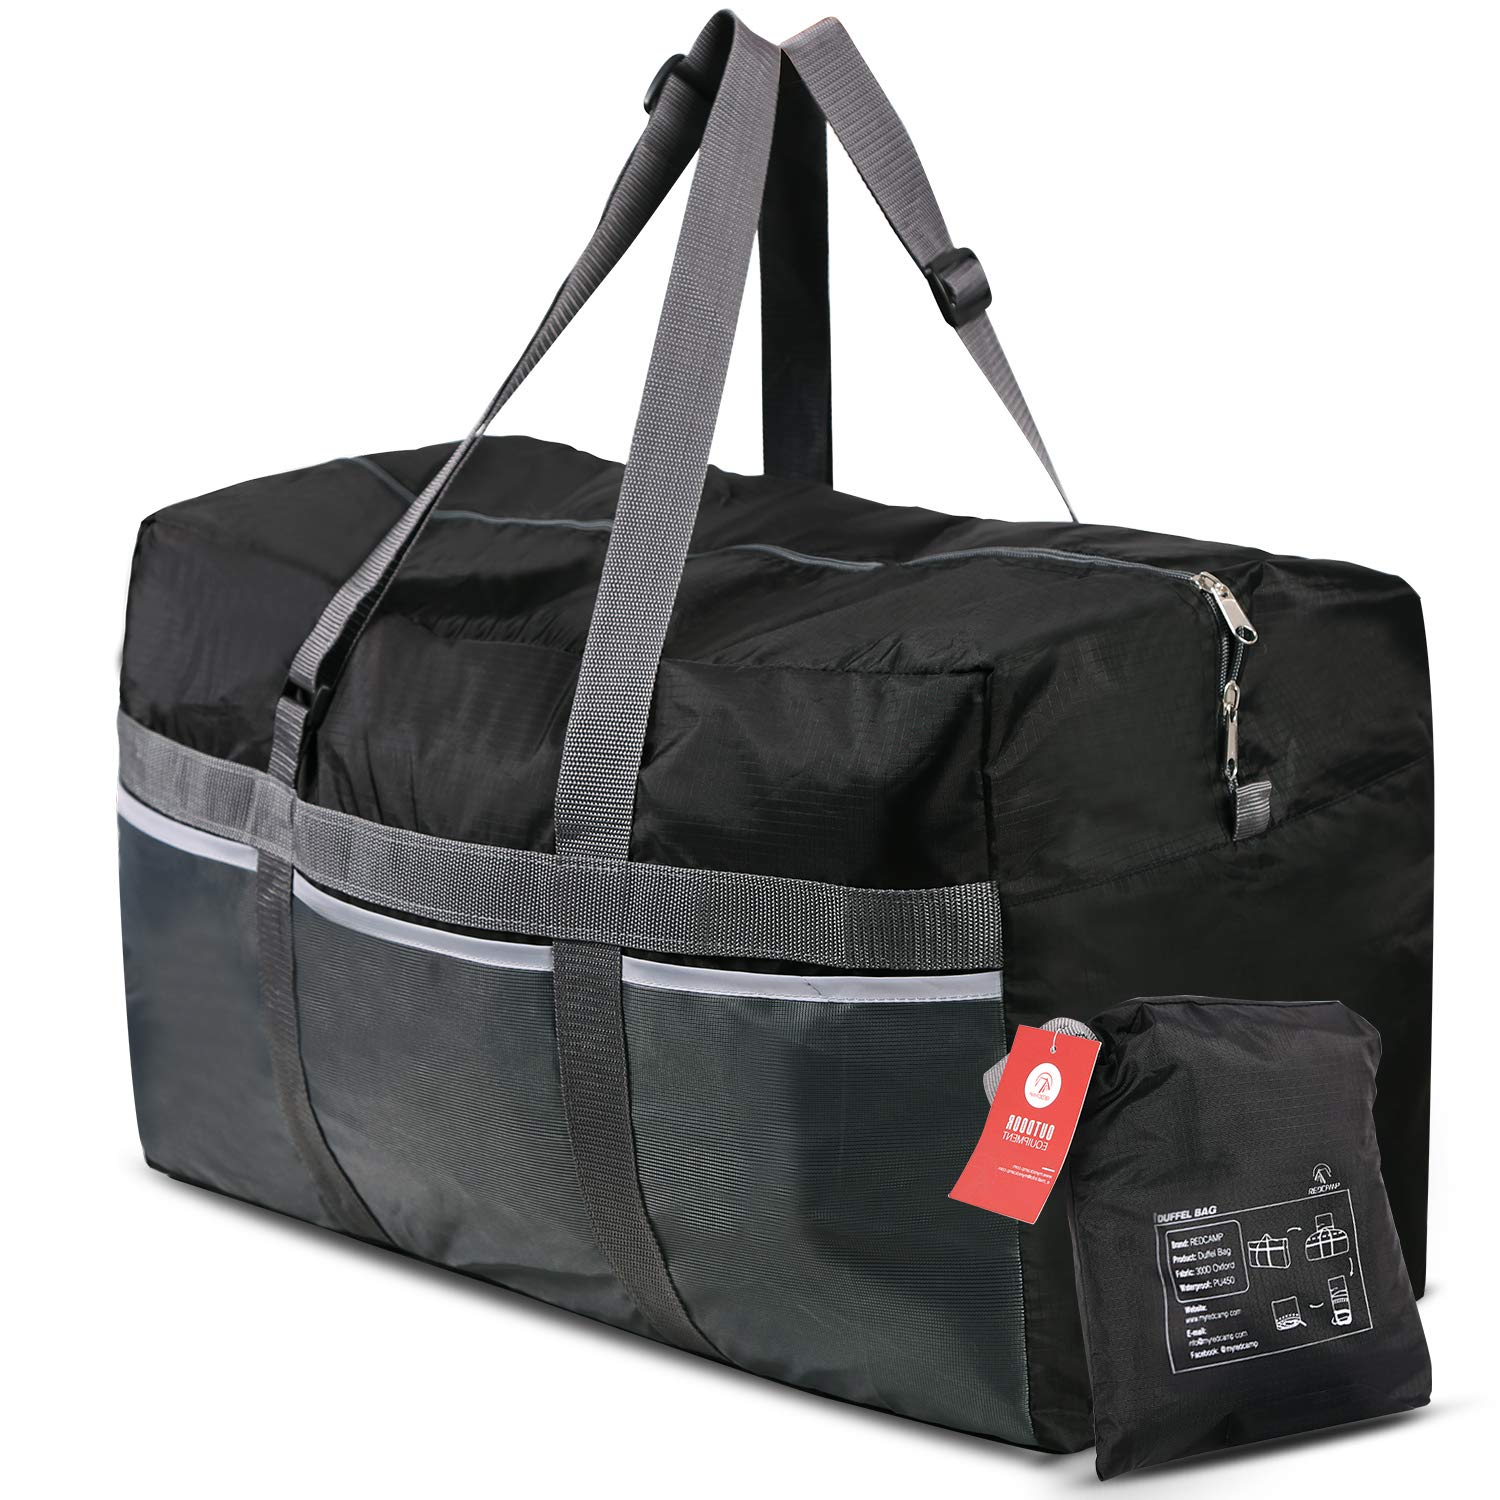 9a355fc1a5e6 REDCAMP 75L Foldable Duffel Bag Large Size Lightweight & Multifunction, 25